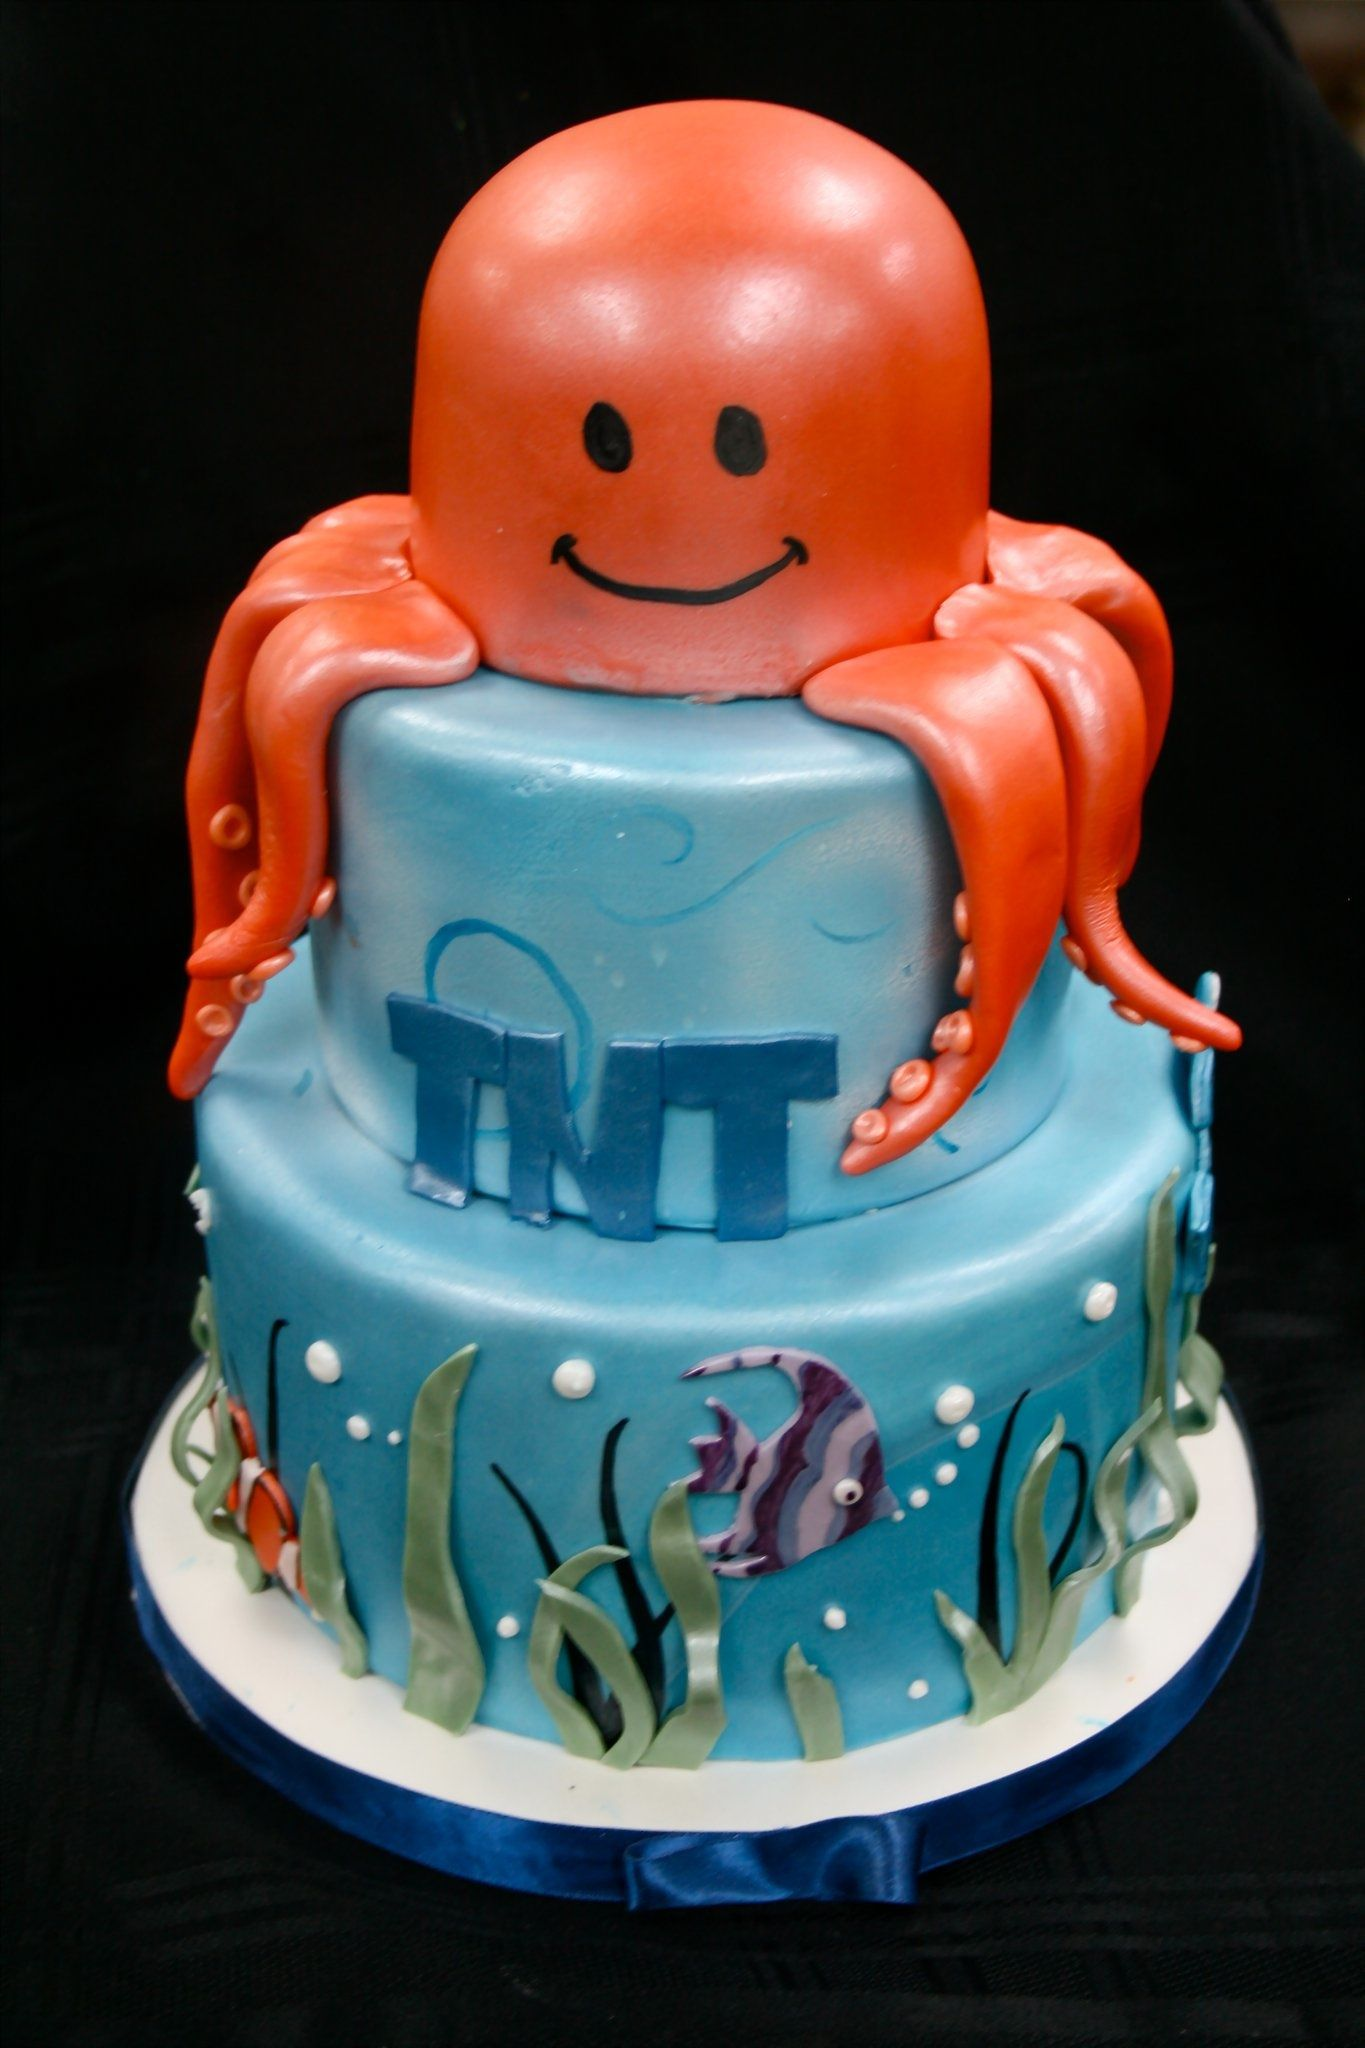 Under The Sea Themed Childrens Birthday Cake With Octopus Topper - Children's birthday venues las vegas